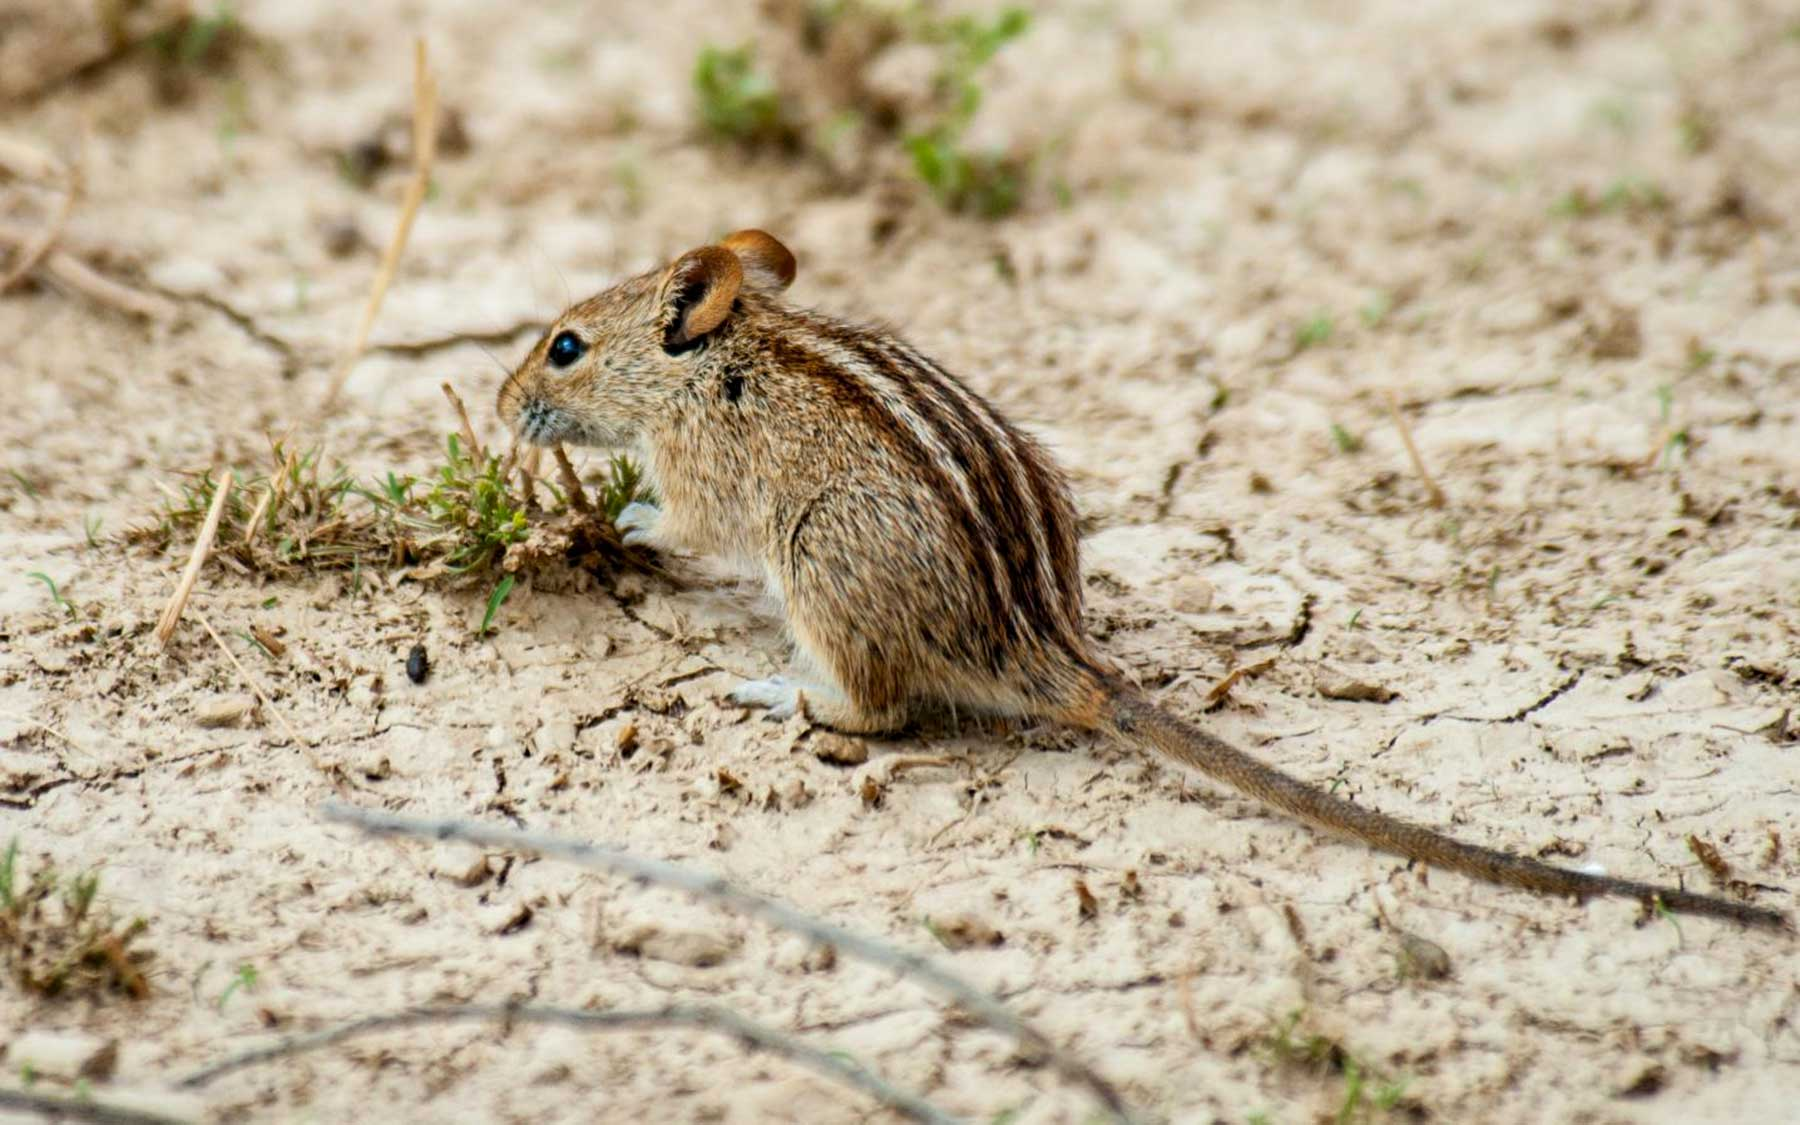 African striped mouse